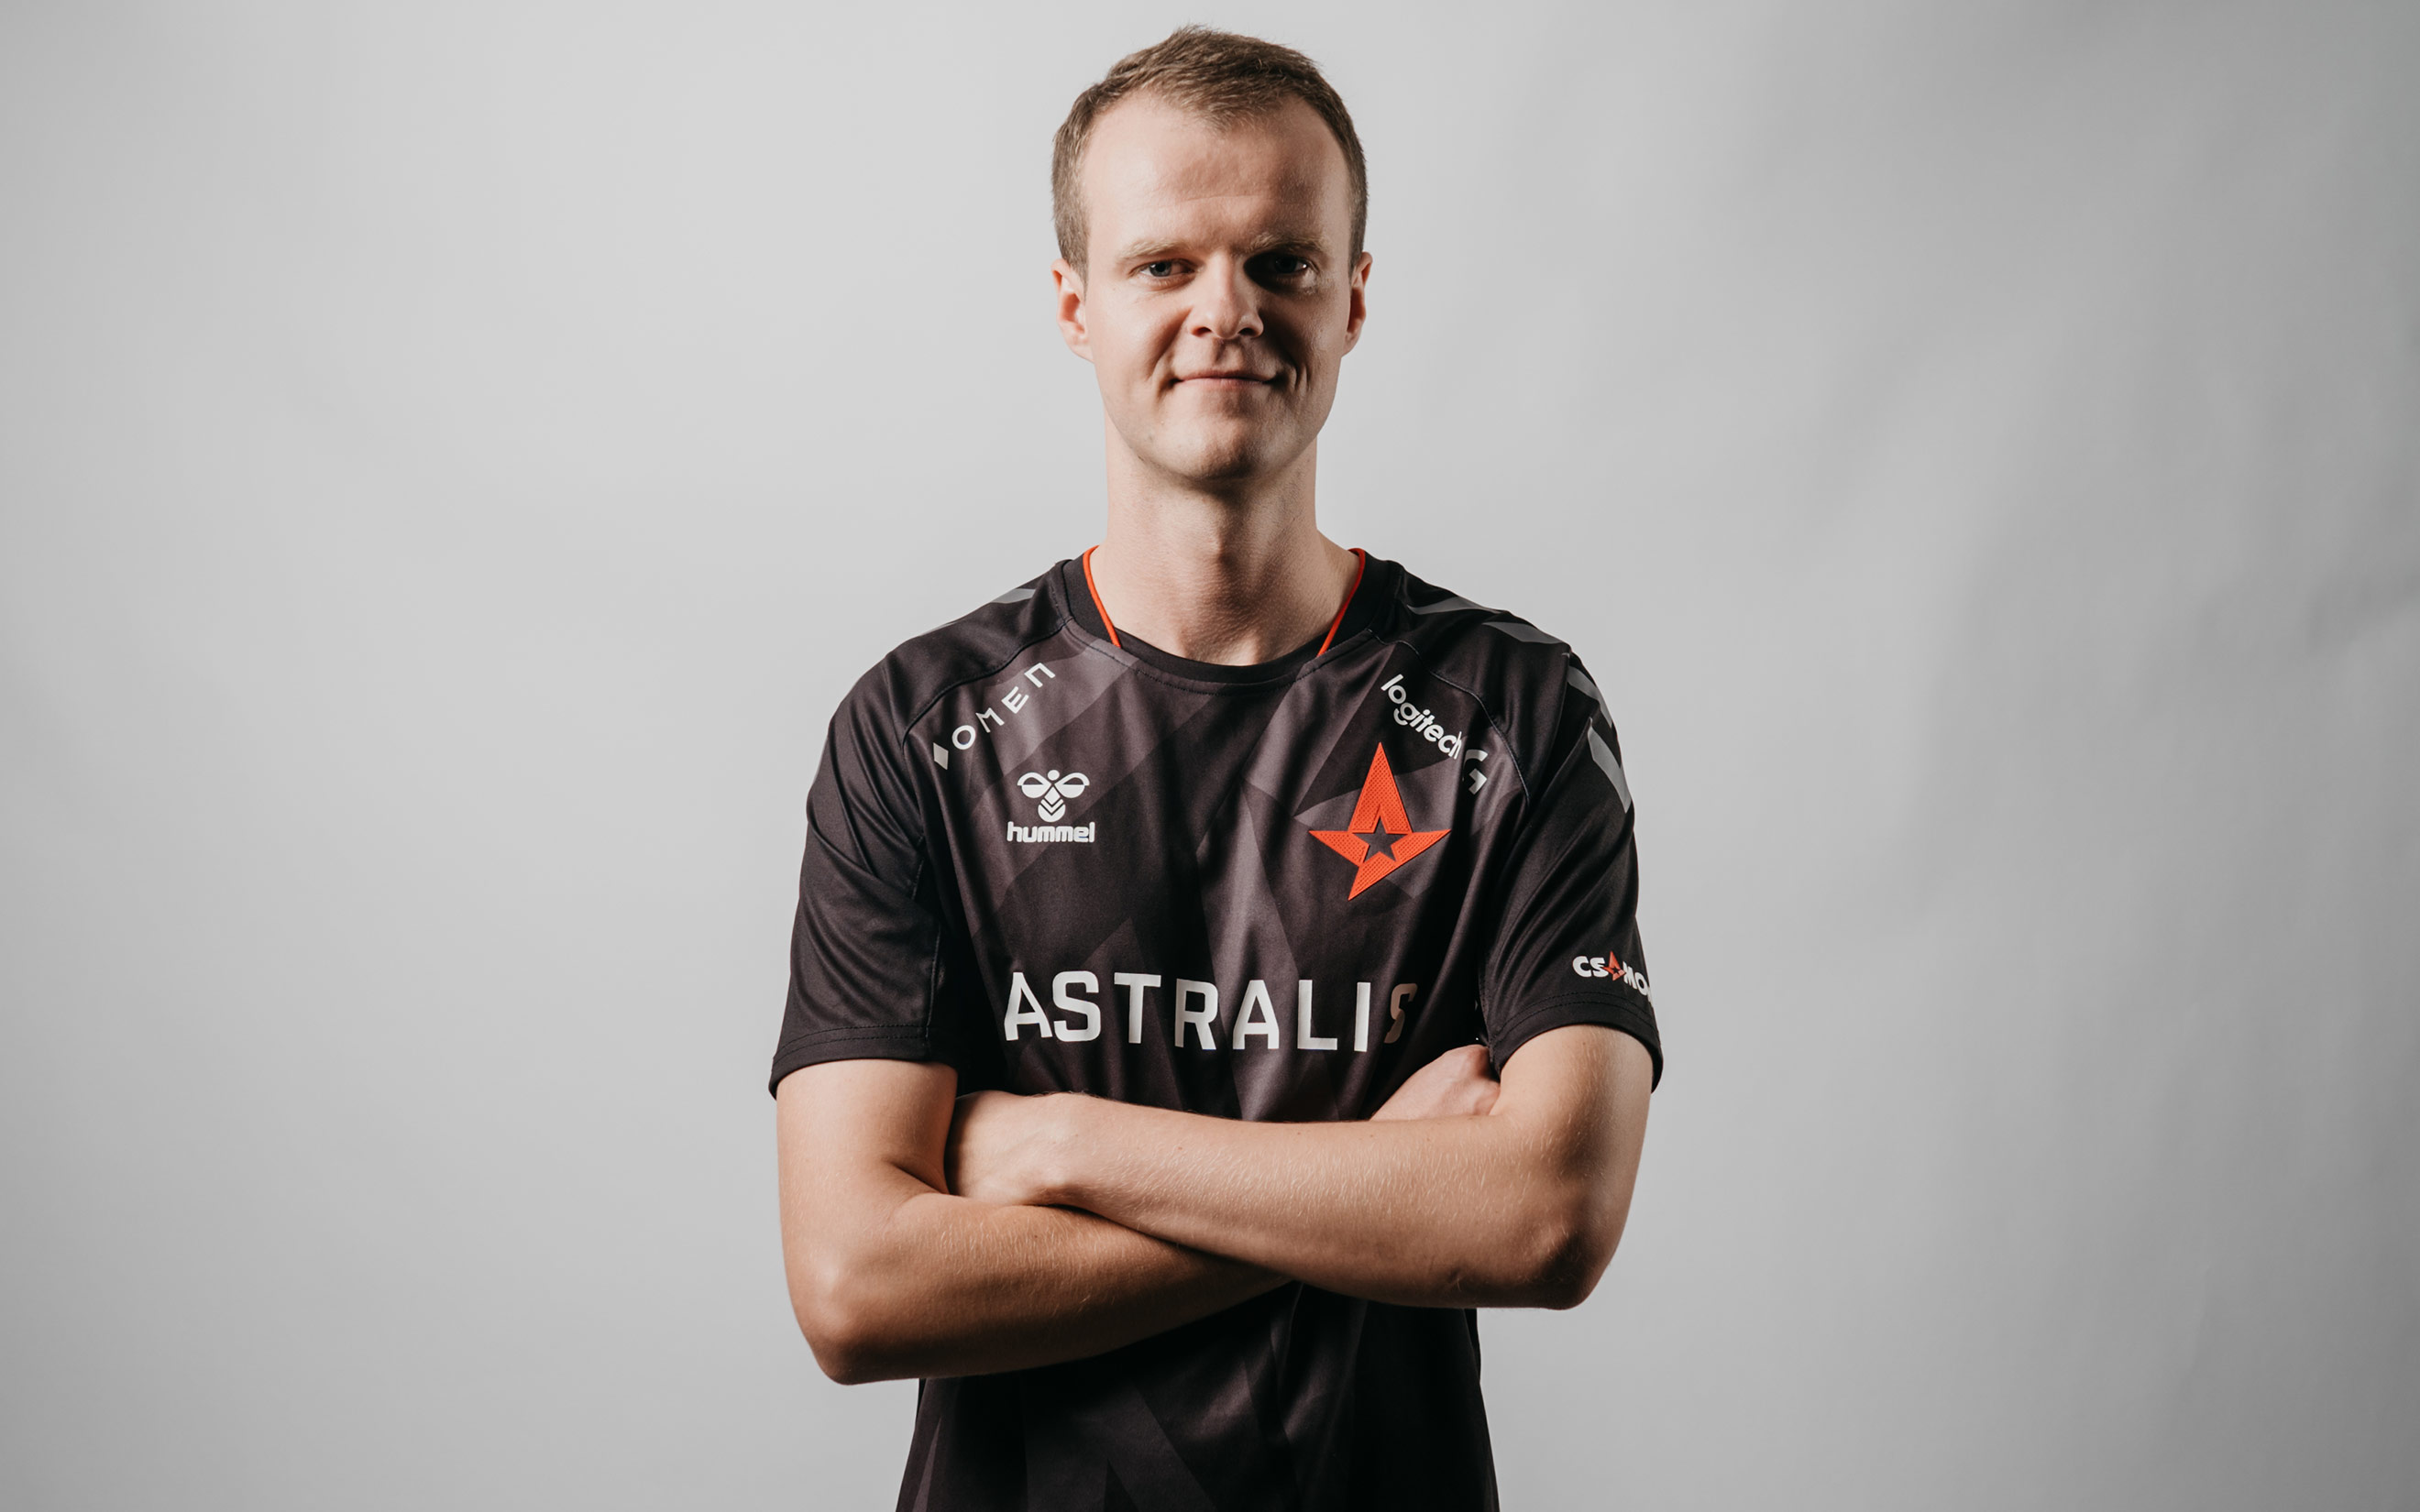 Andreas 'Xyp9x' Højsleth Is Officially Back With Astralis